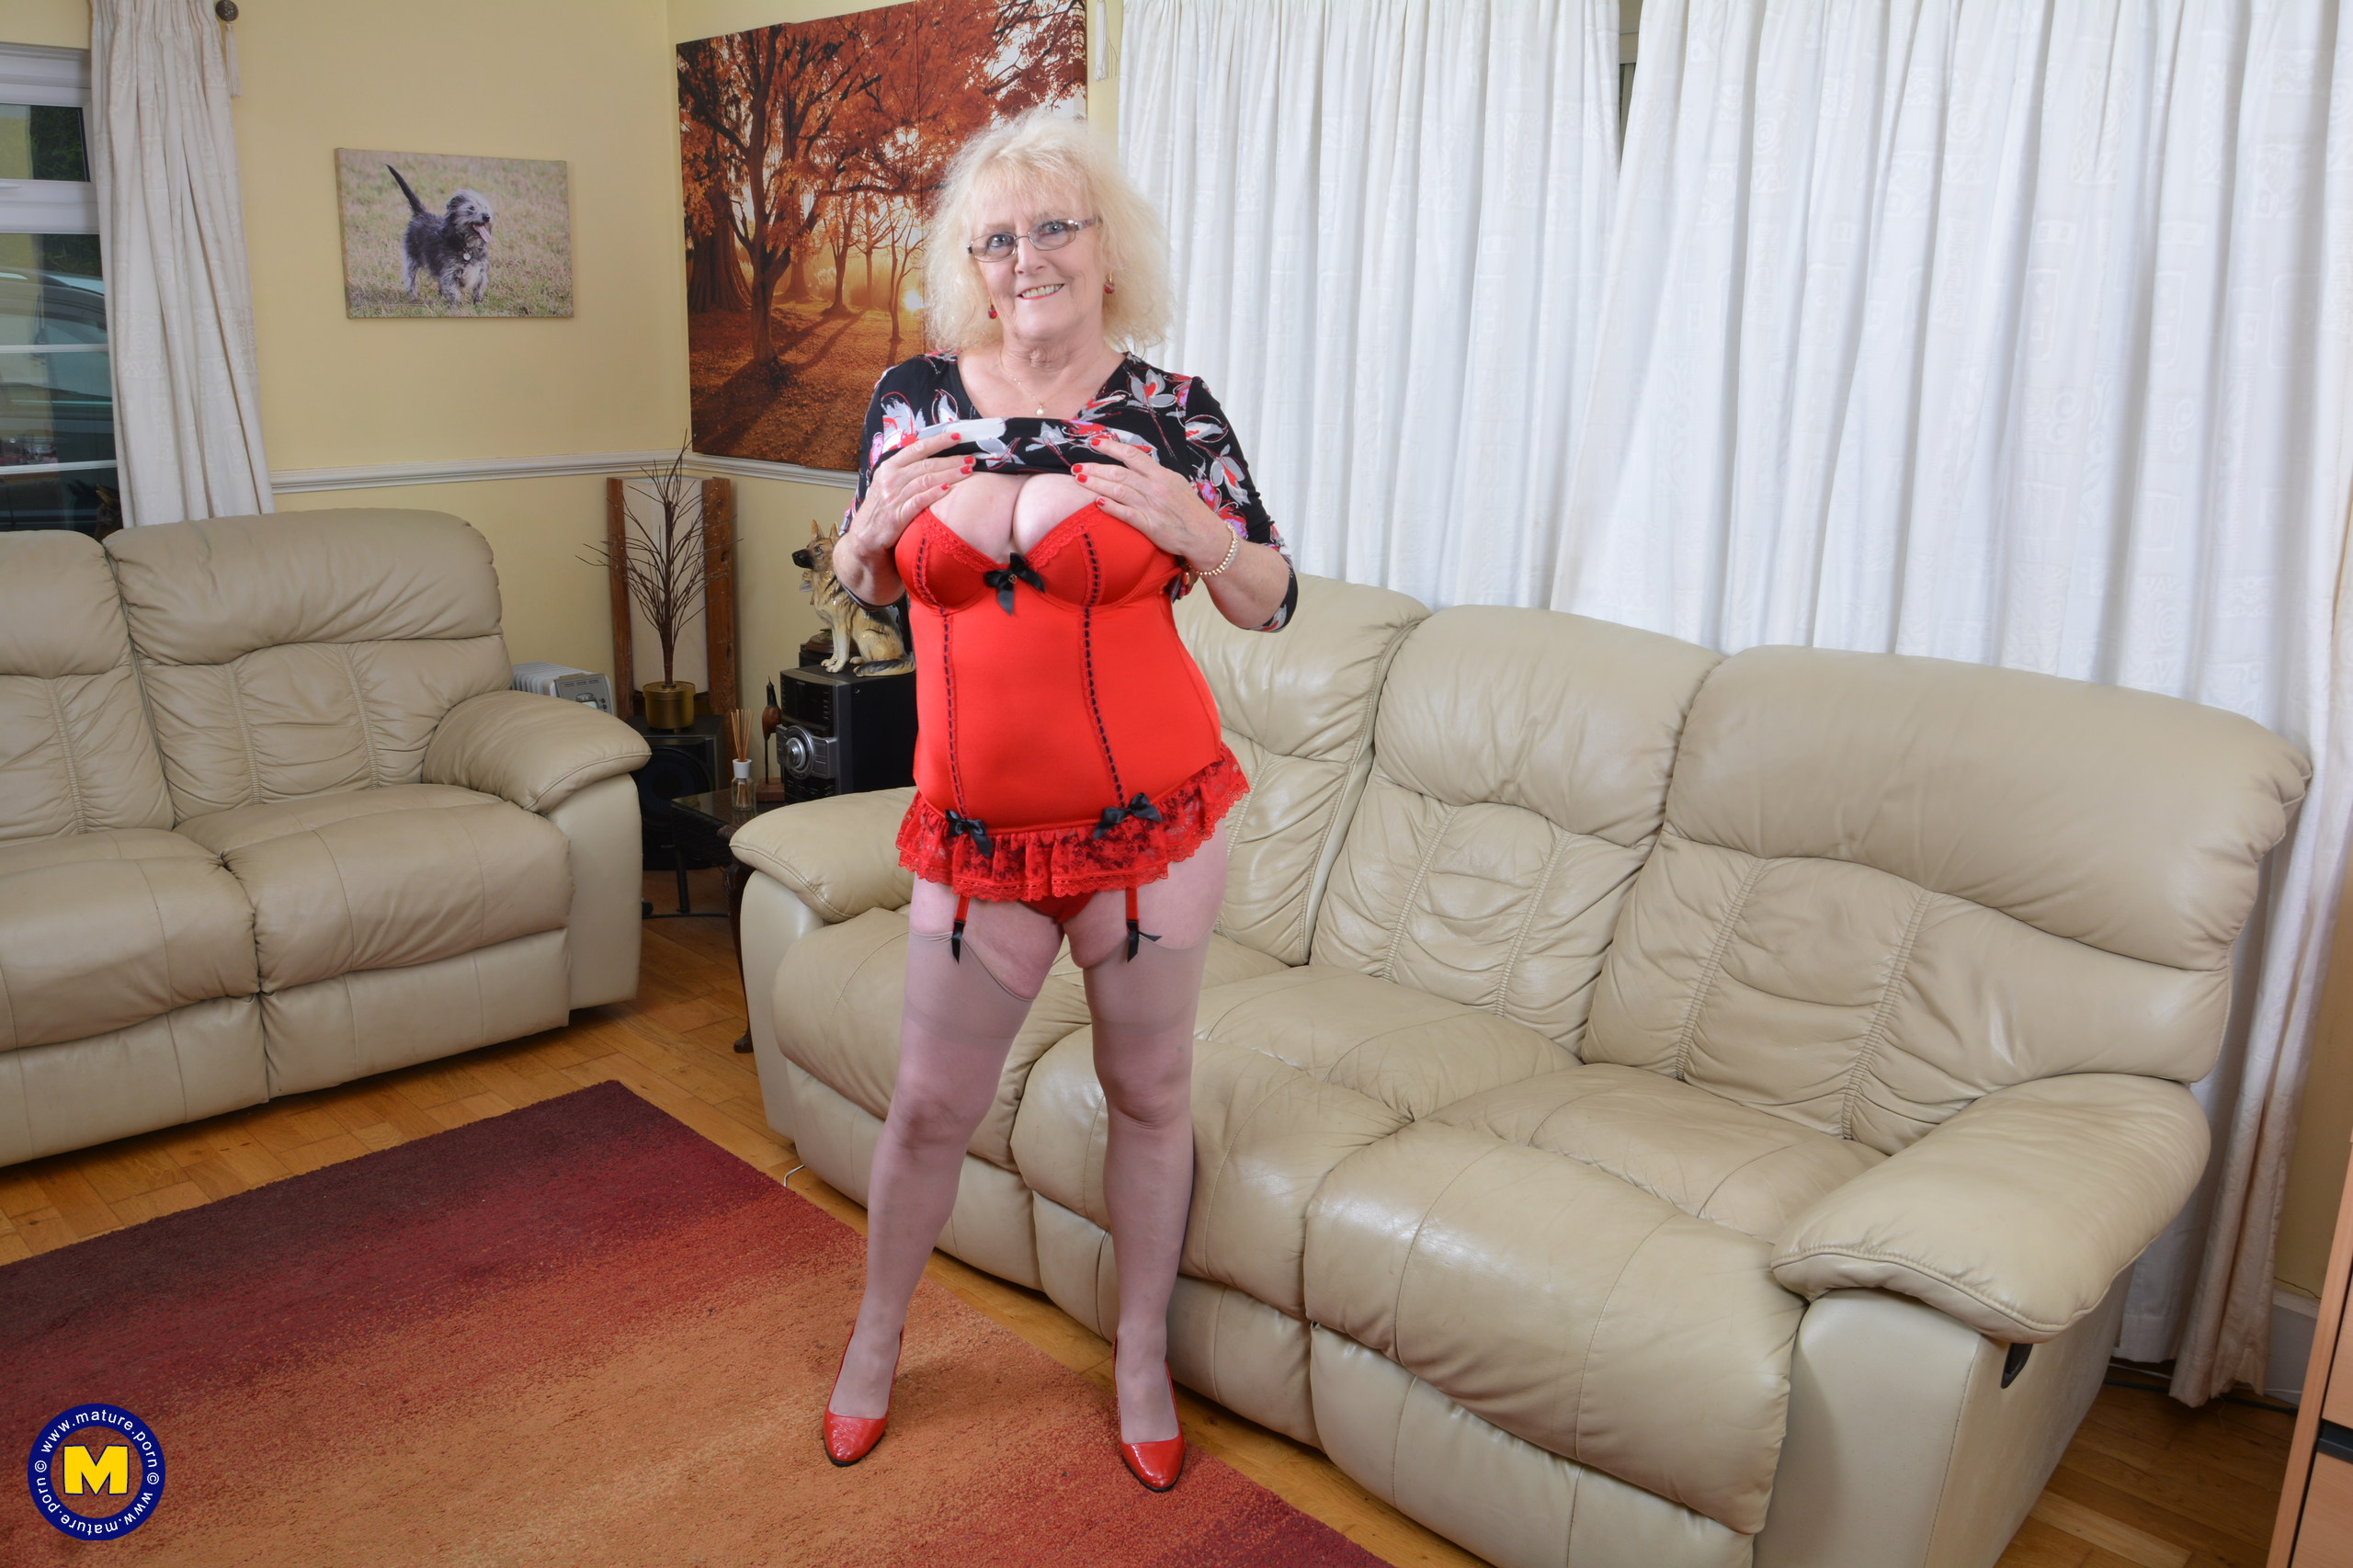 Kinky Brit mature damsel getting humid on her sofa